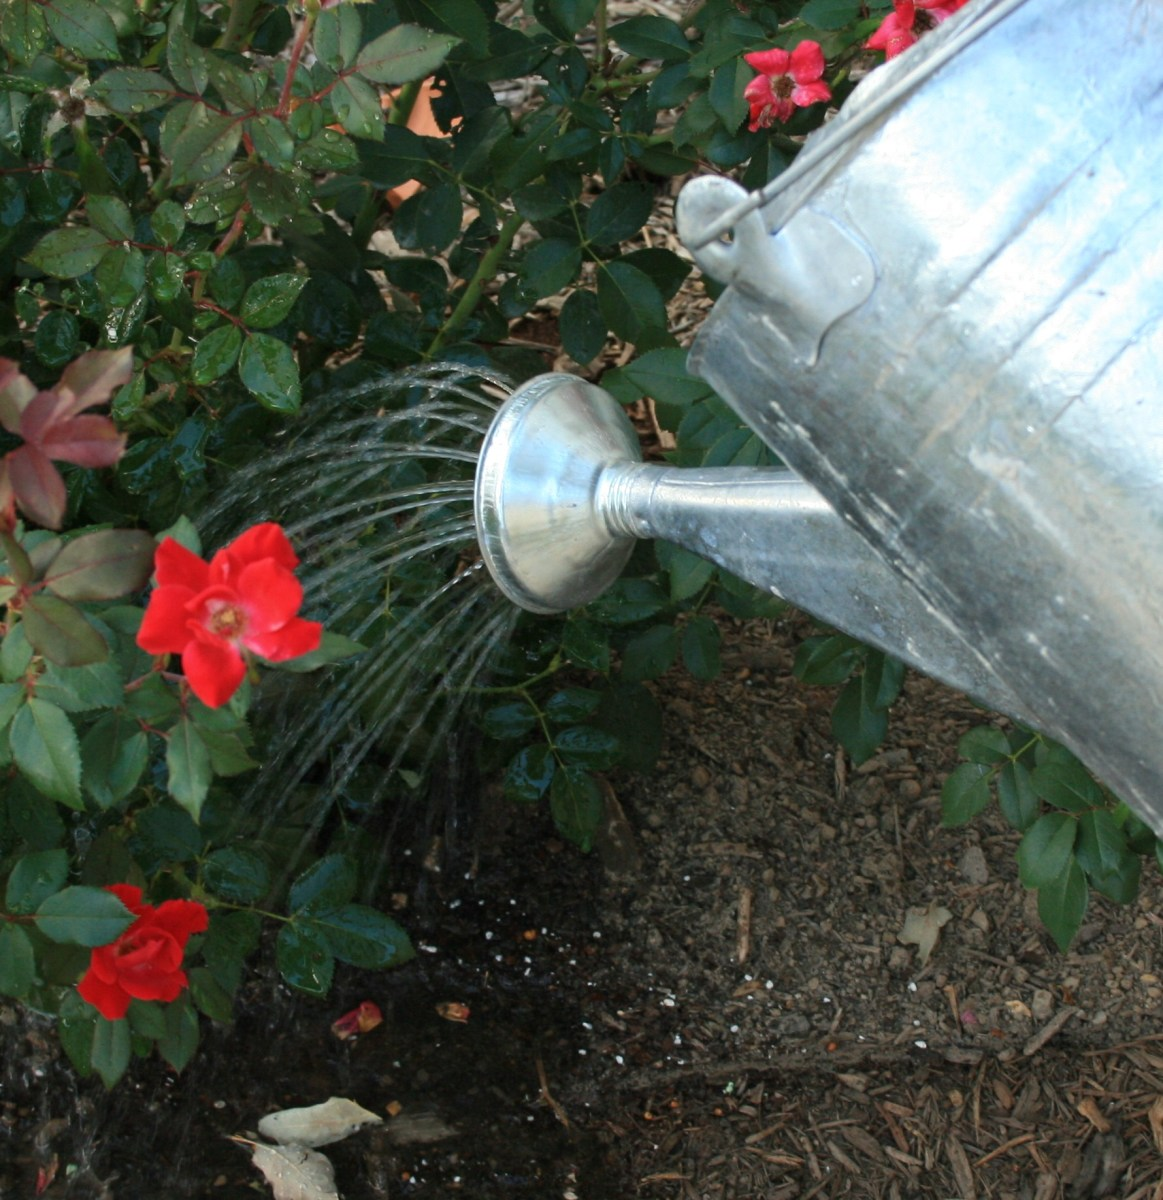 Don't flush your urine down the drain. Wet your plants! Human pee is full of nitrogen and other nutrients plants love.